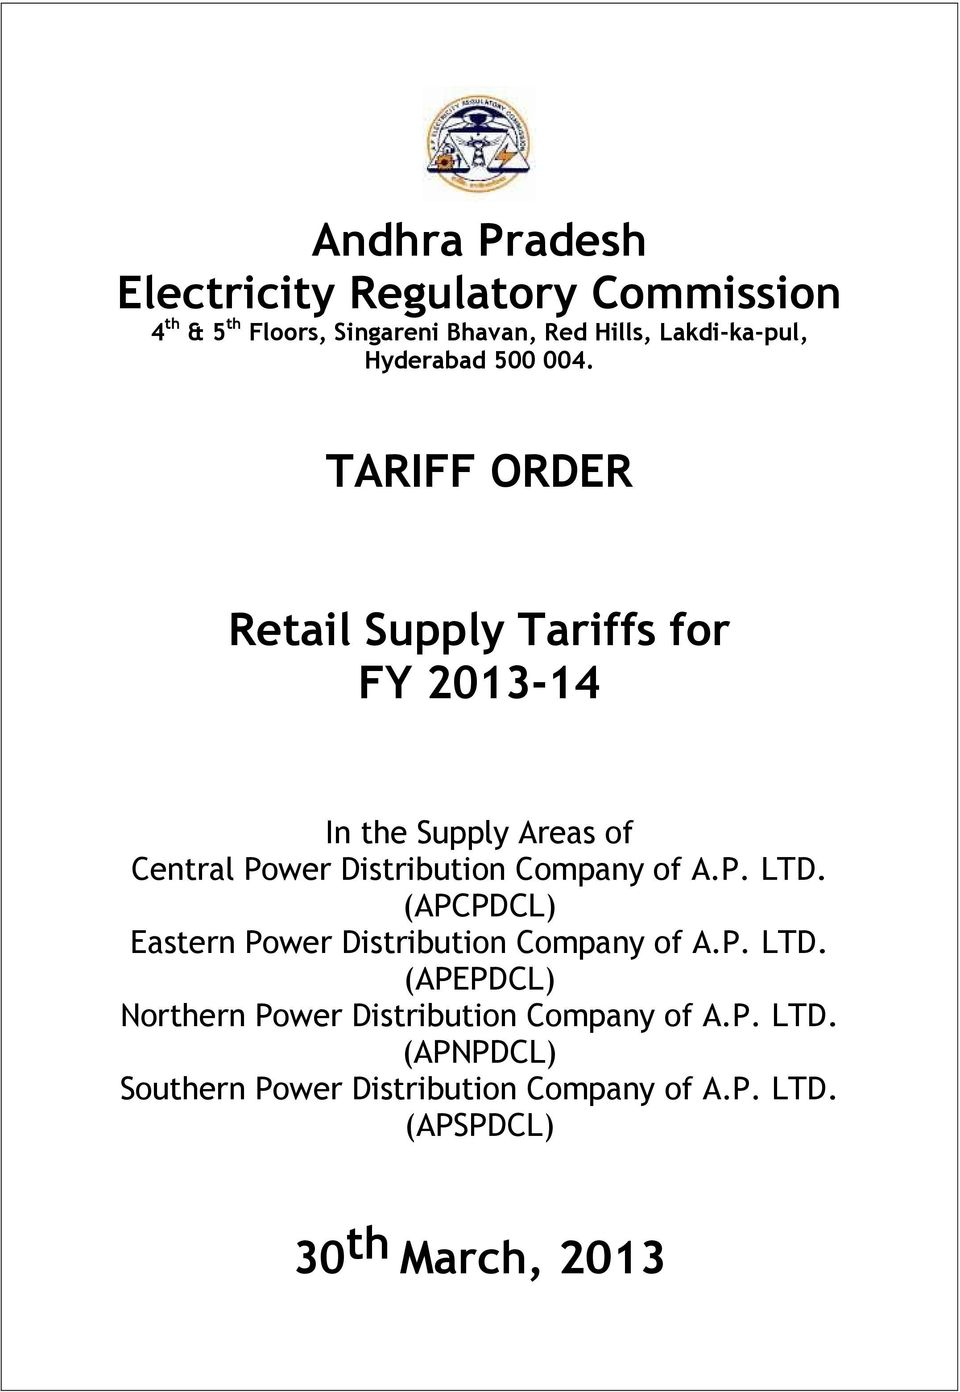 TARIFF ORDER Retail Supply Tariffs for FY 2013-14 In the Supply Areas of Central Power Distribution Company of A.